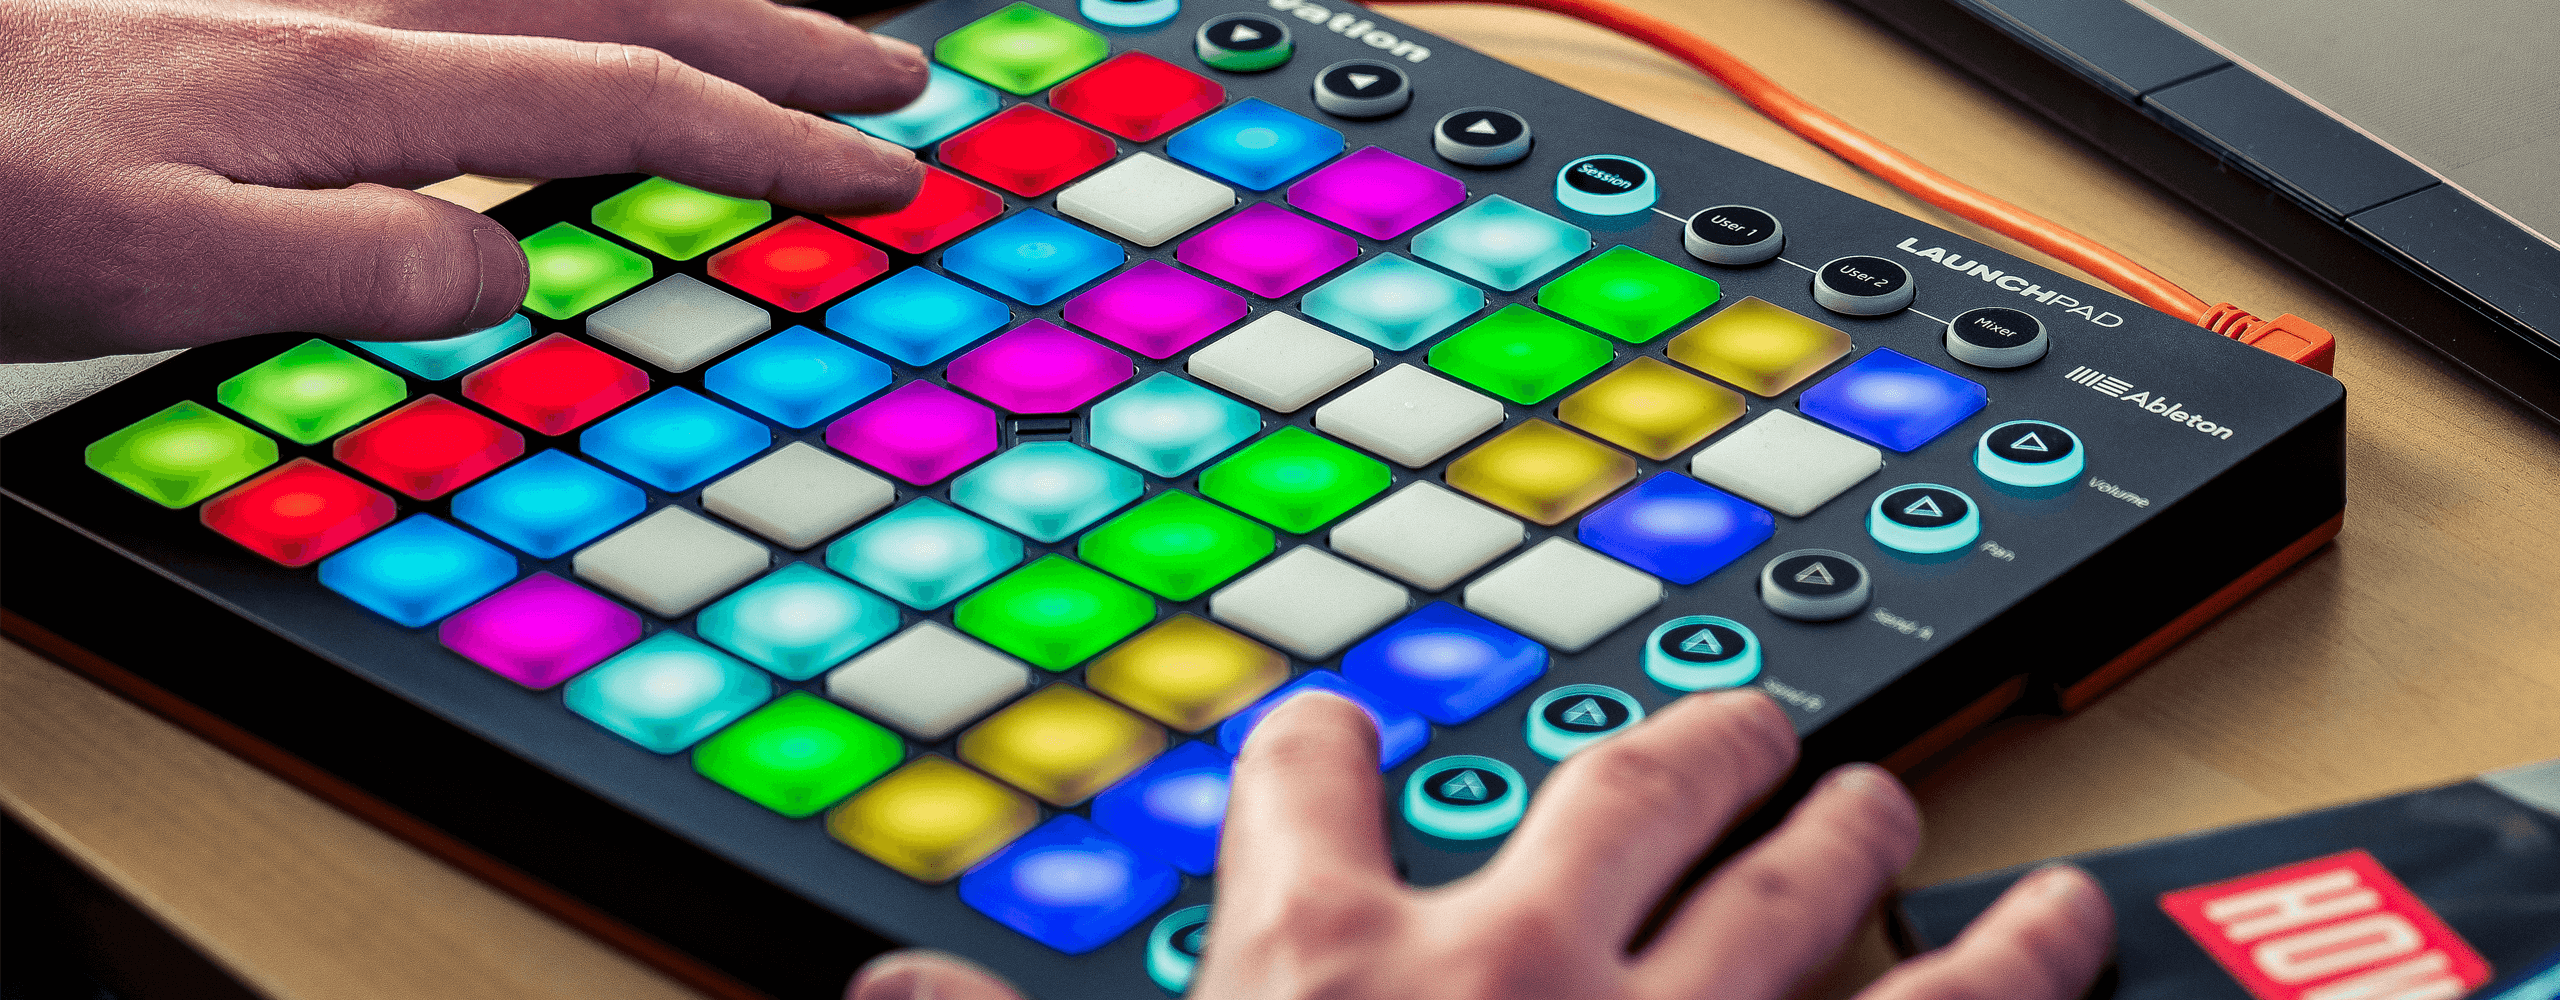 Launchpad | Novation